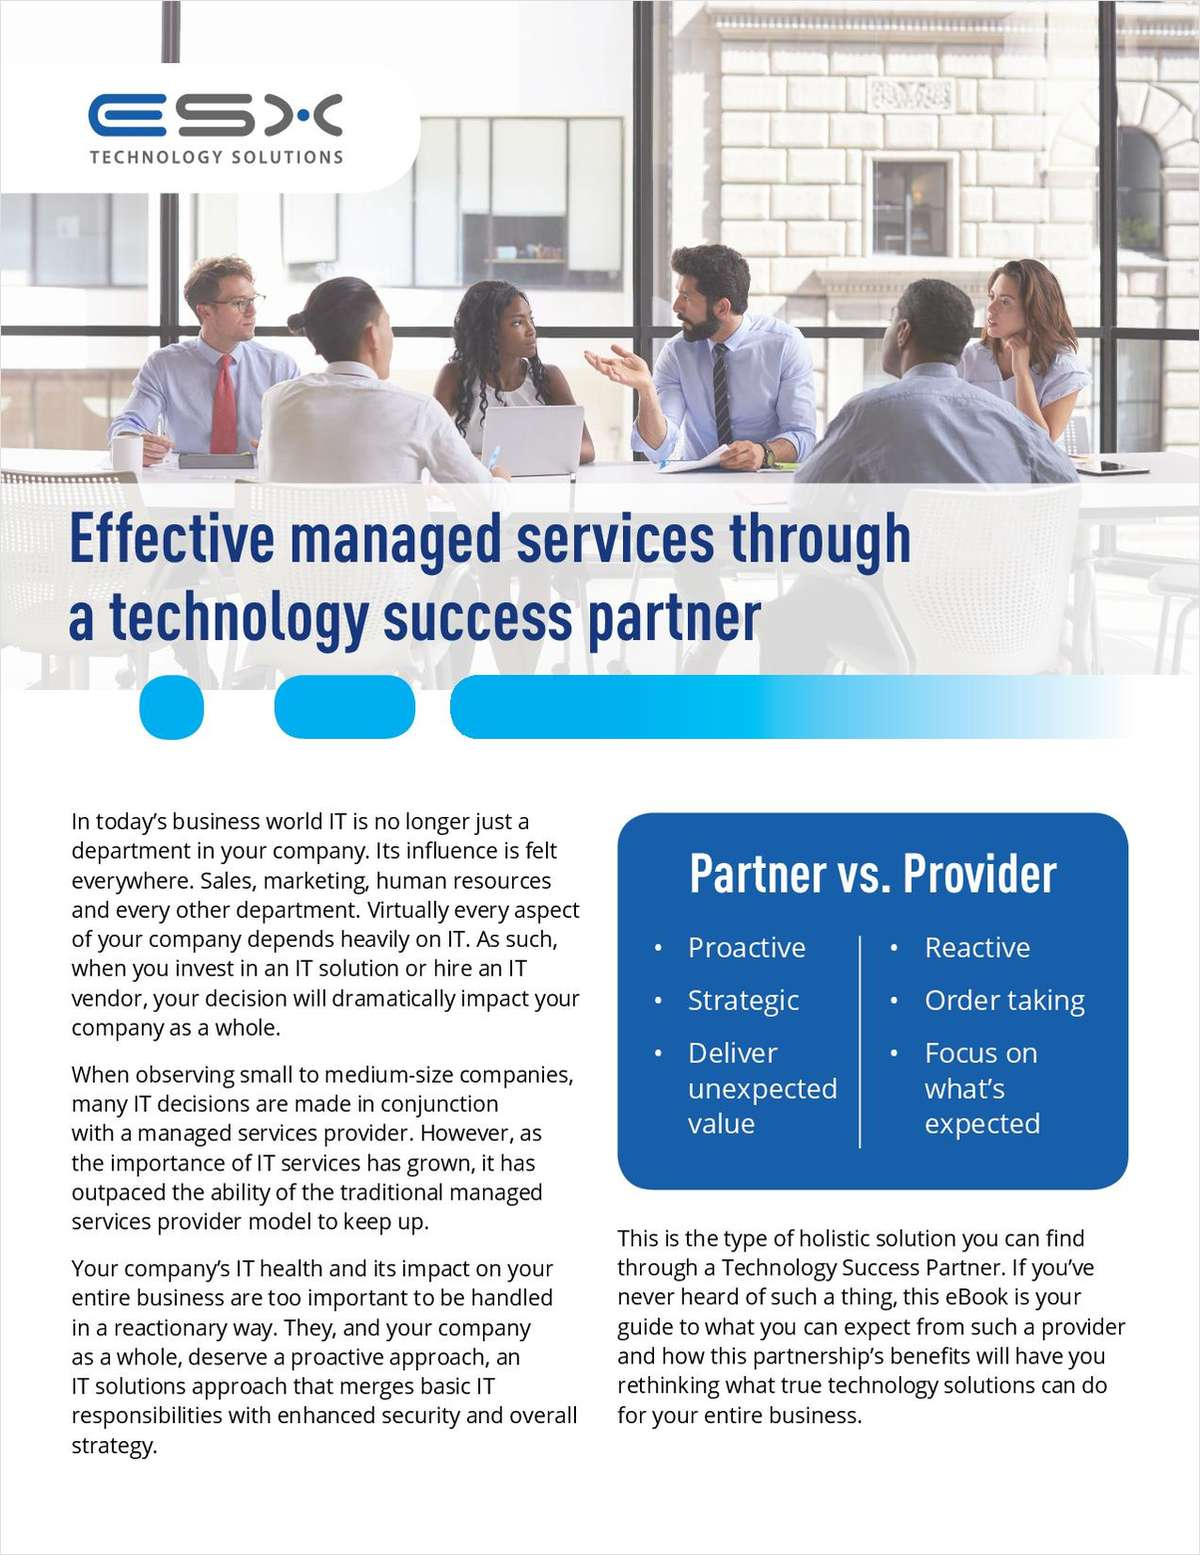 Effective Managed Services Through a Technology Success Partner